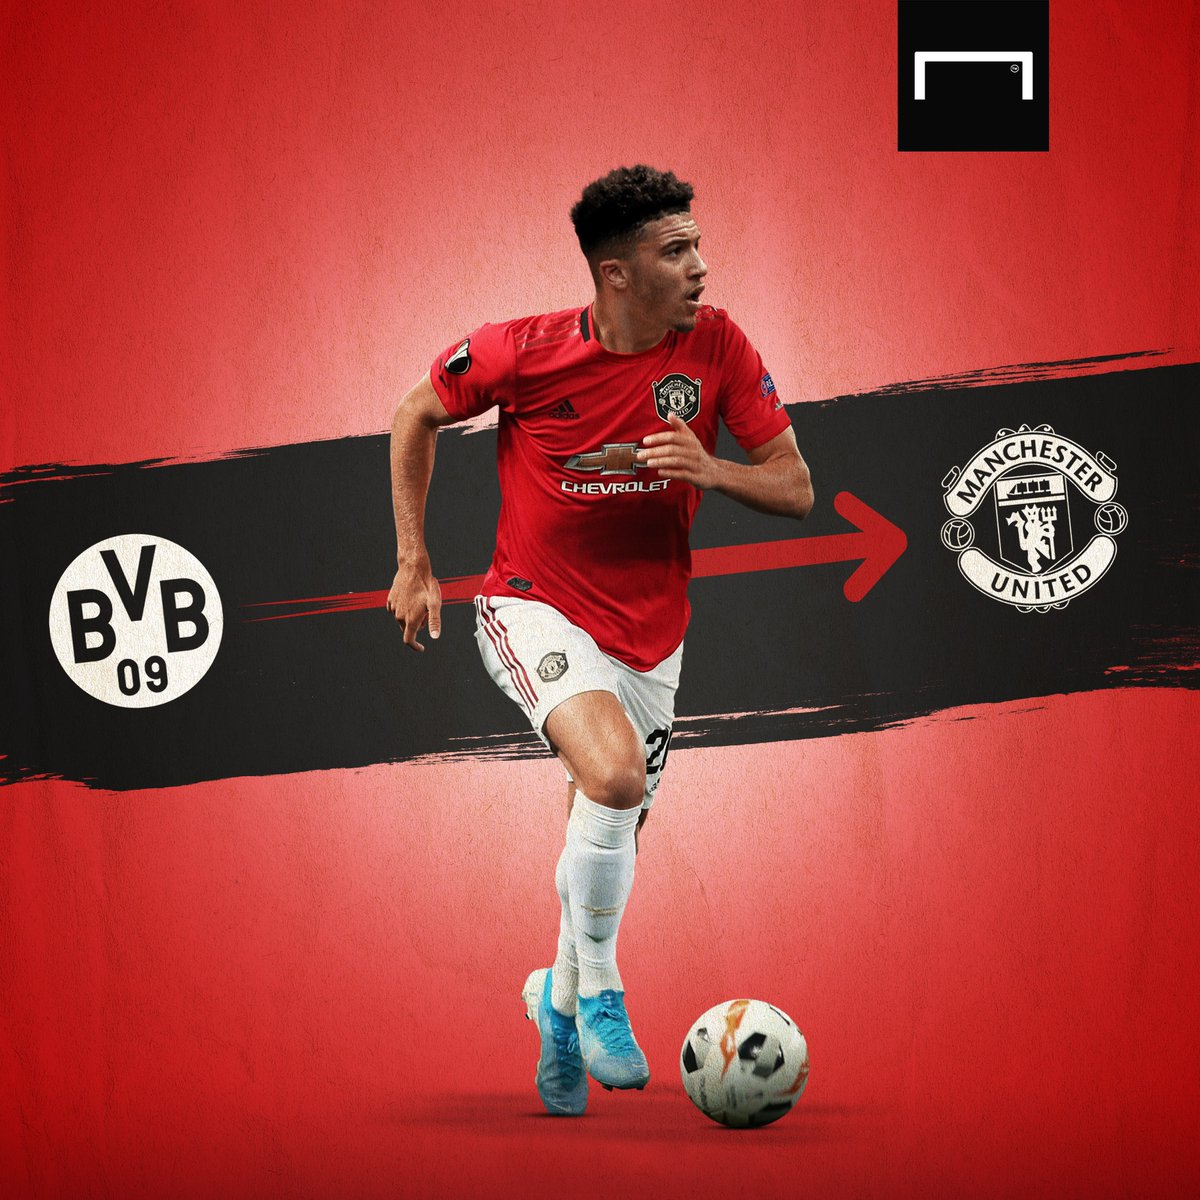 Manchester United will only pay Jadon Sancho's €120 million asking price if they qualify for the Champions League, according to Bild 👀 https://t.co/fDZgUYDnha